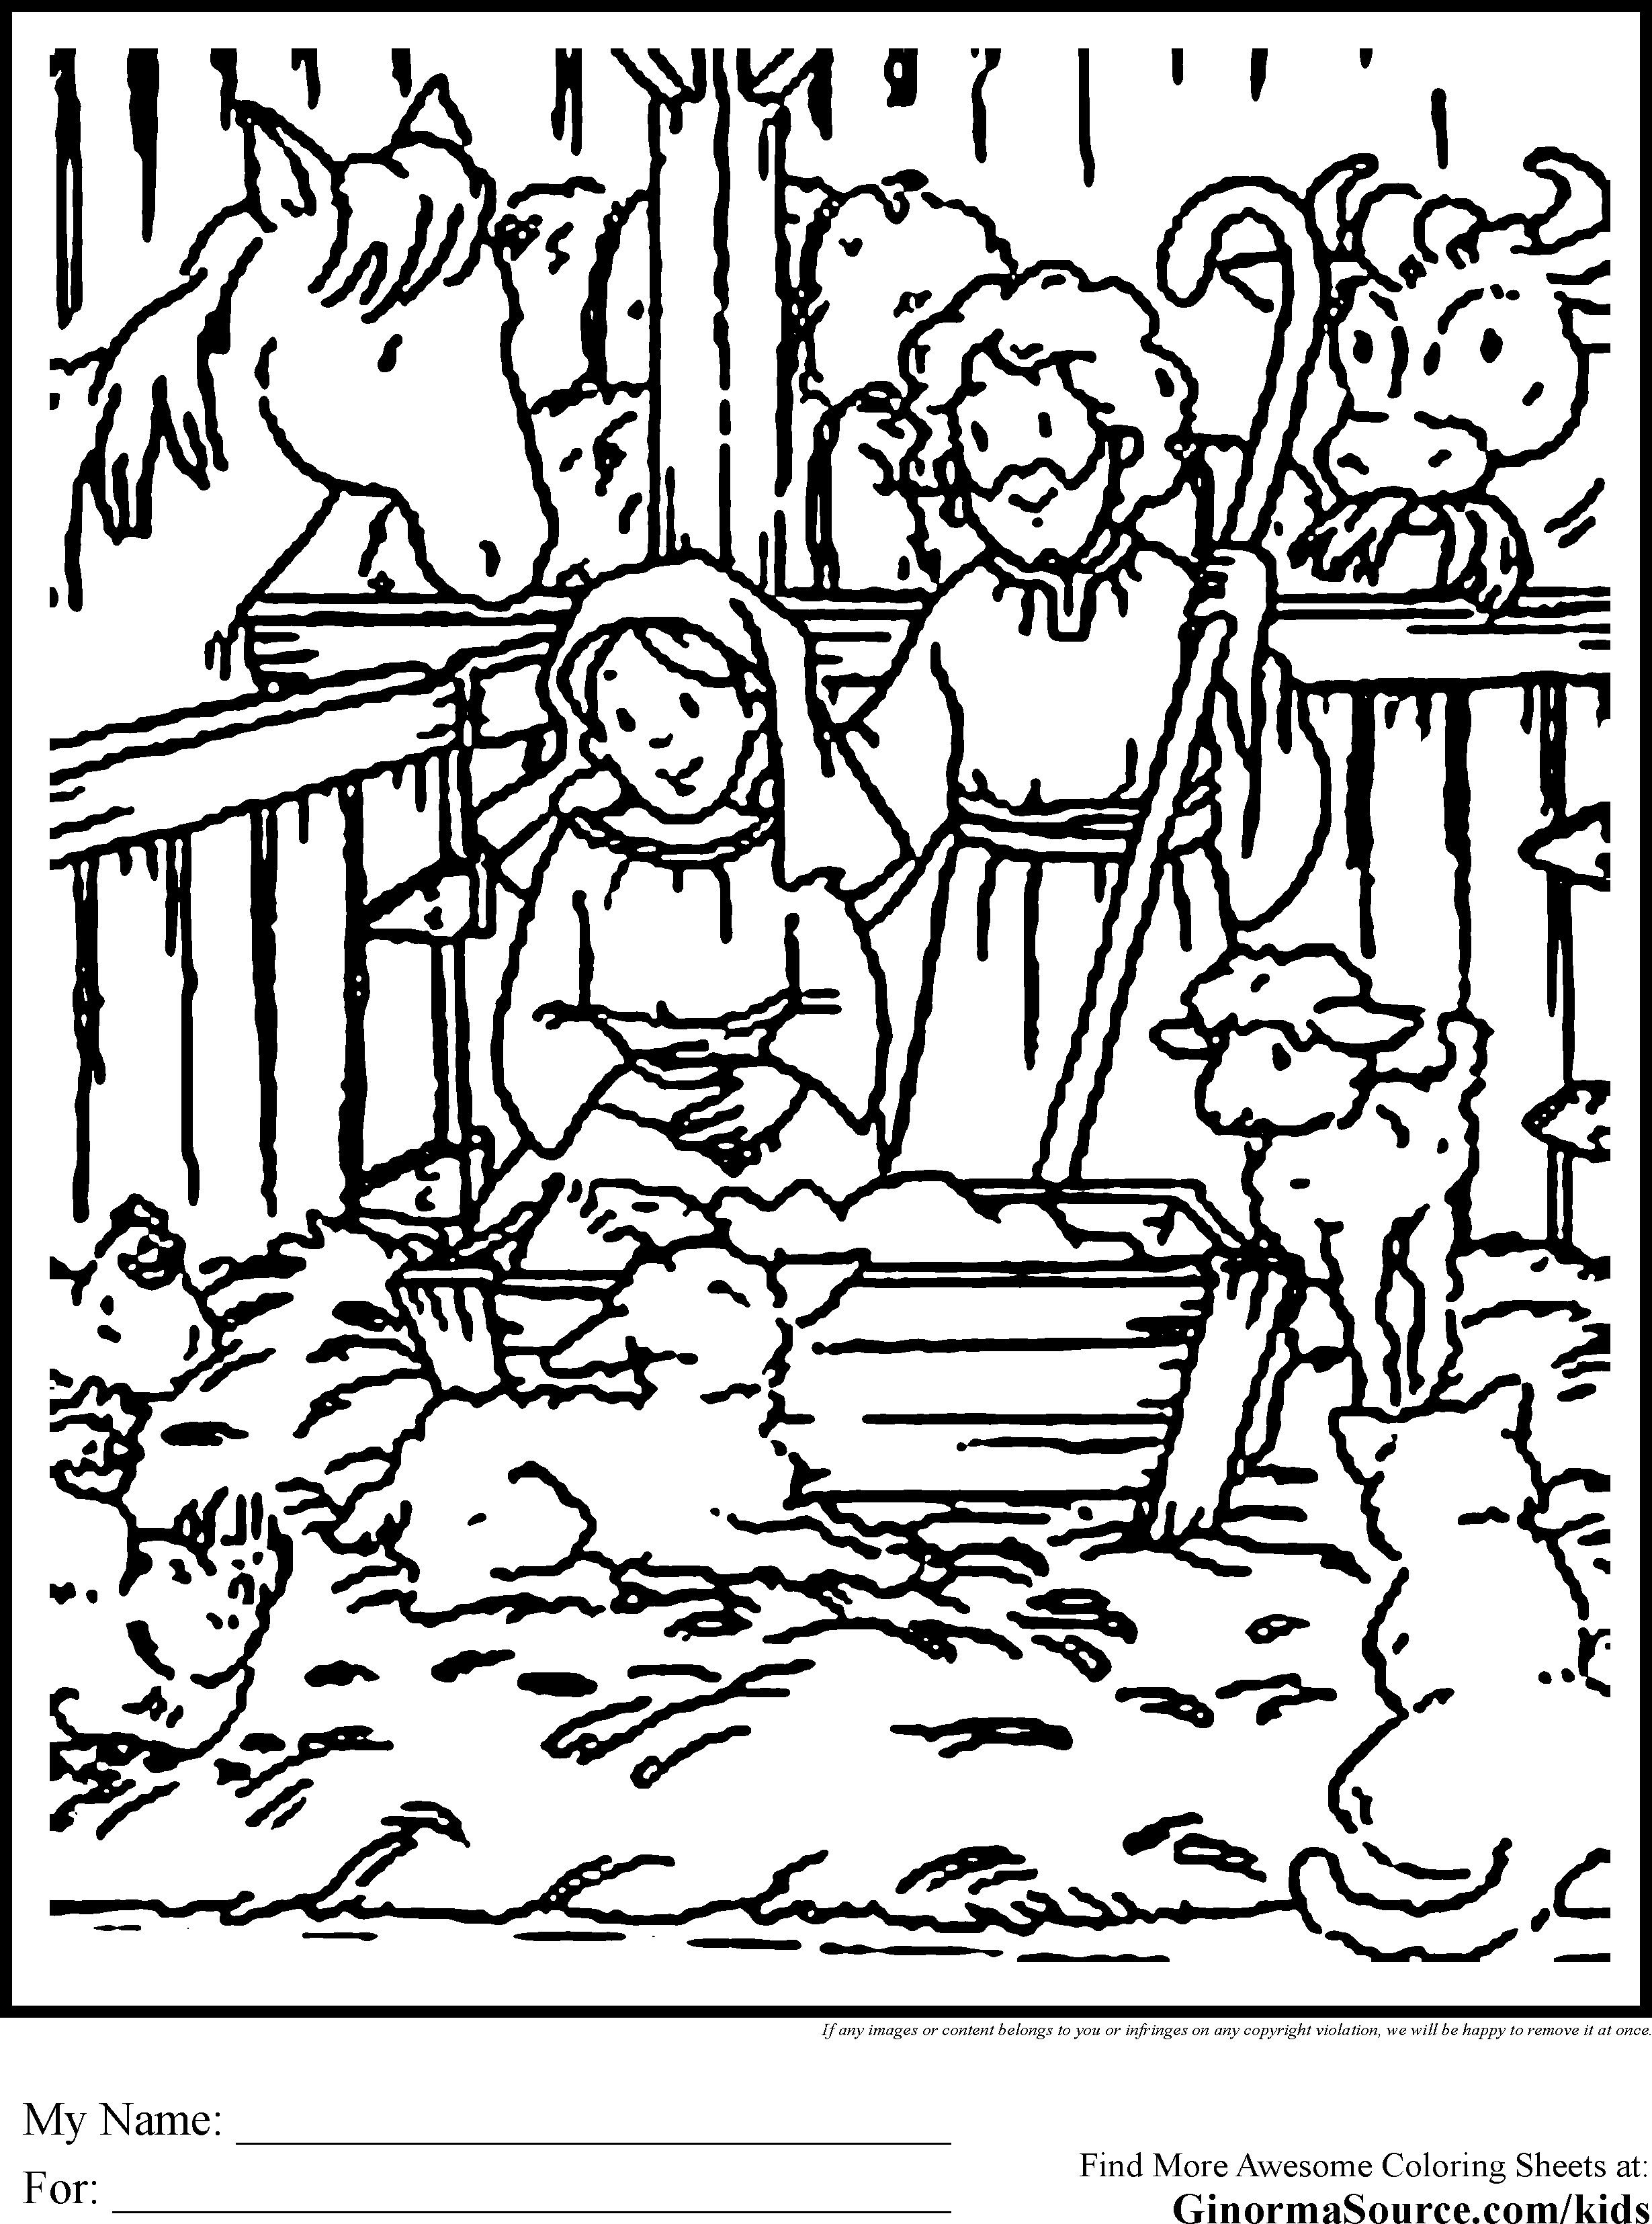 jesus saves coloring page coloring worksheets free christian pages for kids jesus page coloring saves